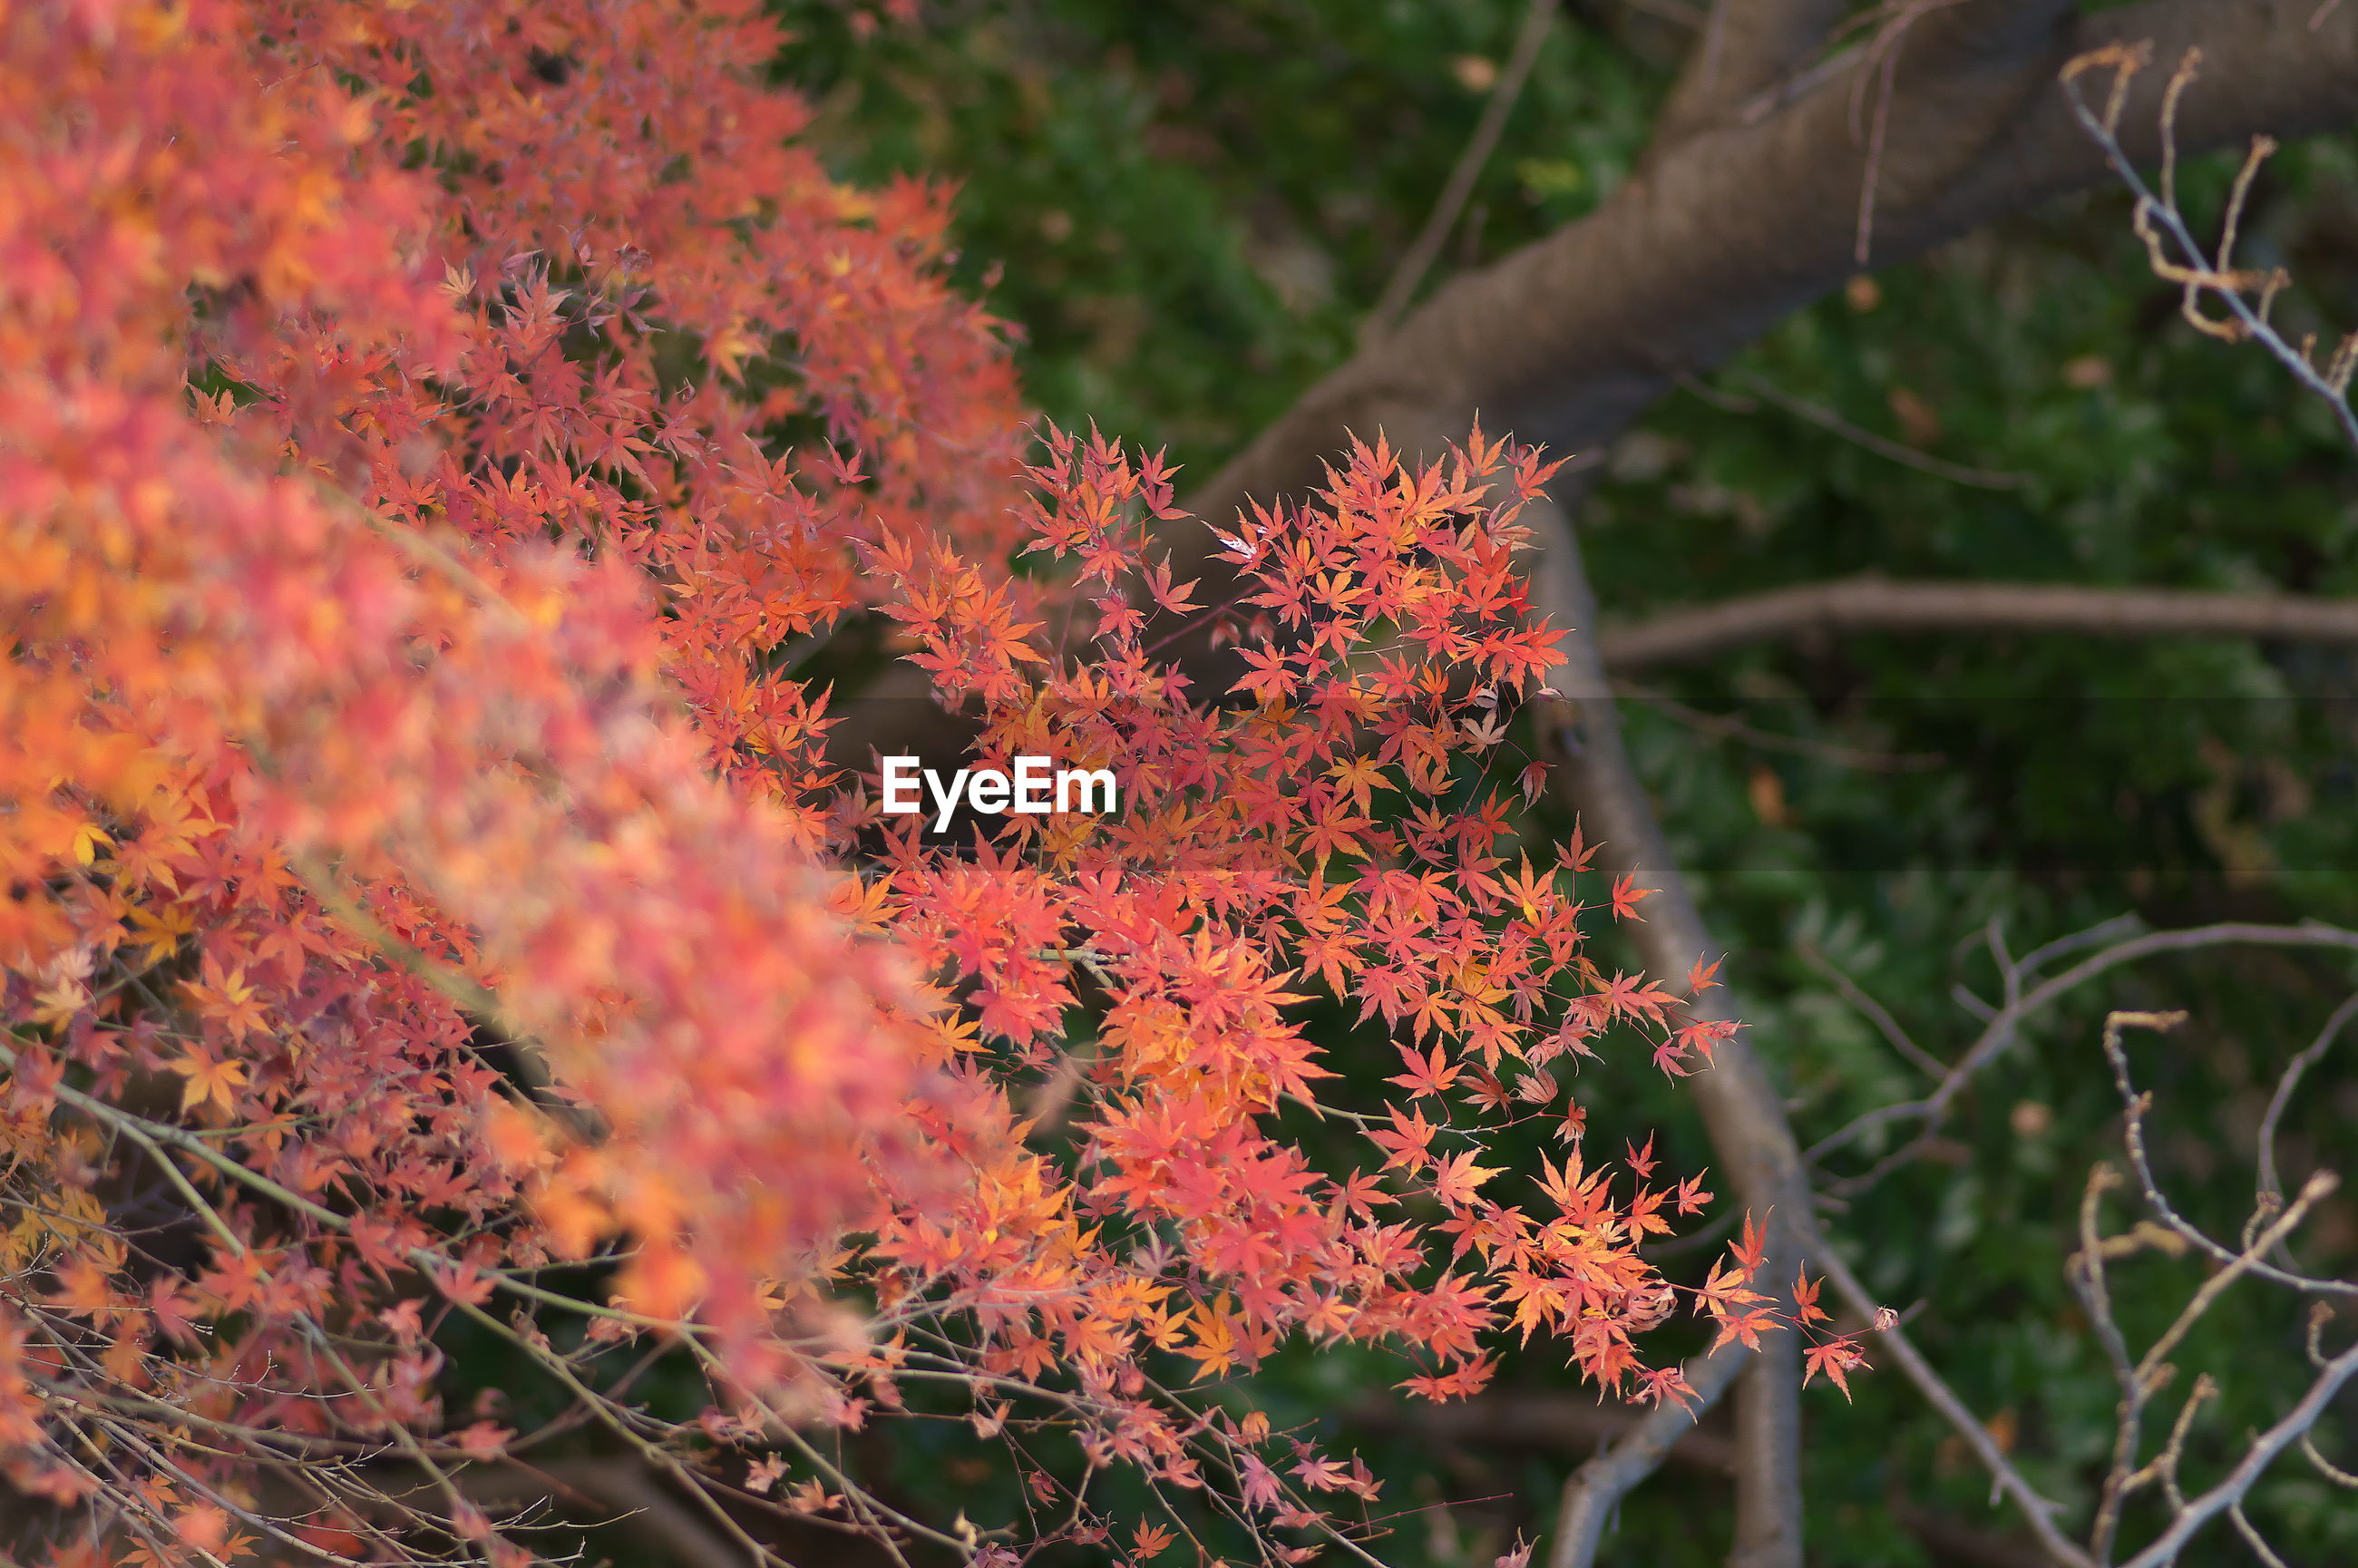 CLOSE-UP OF RED MAPLE LEAF ON TREE DURING AUTUMN